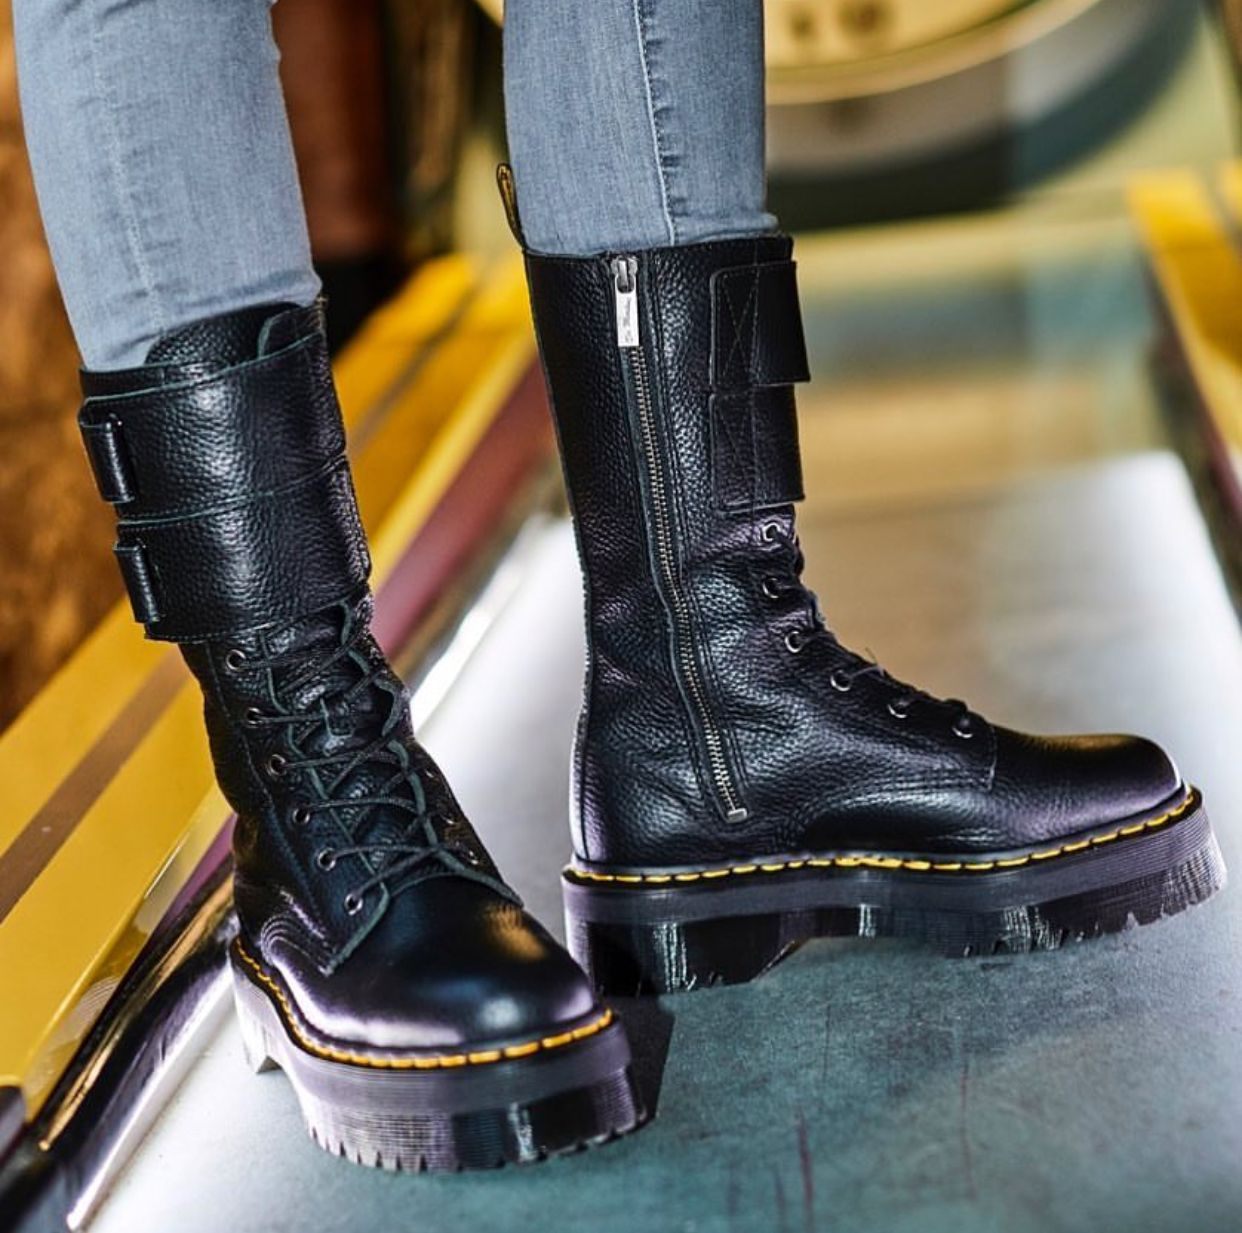 fef789b43ff The Jagger Boot | Dr Martens | Shoe lover in 2019 | Boots, Shoes ...